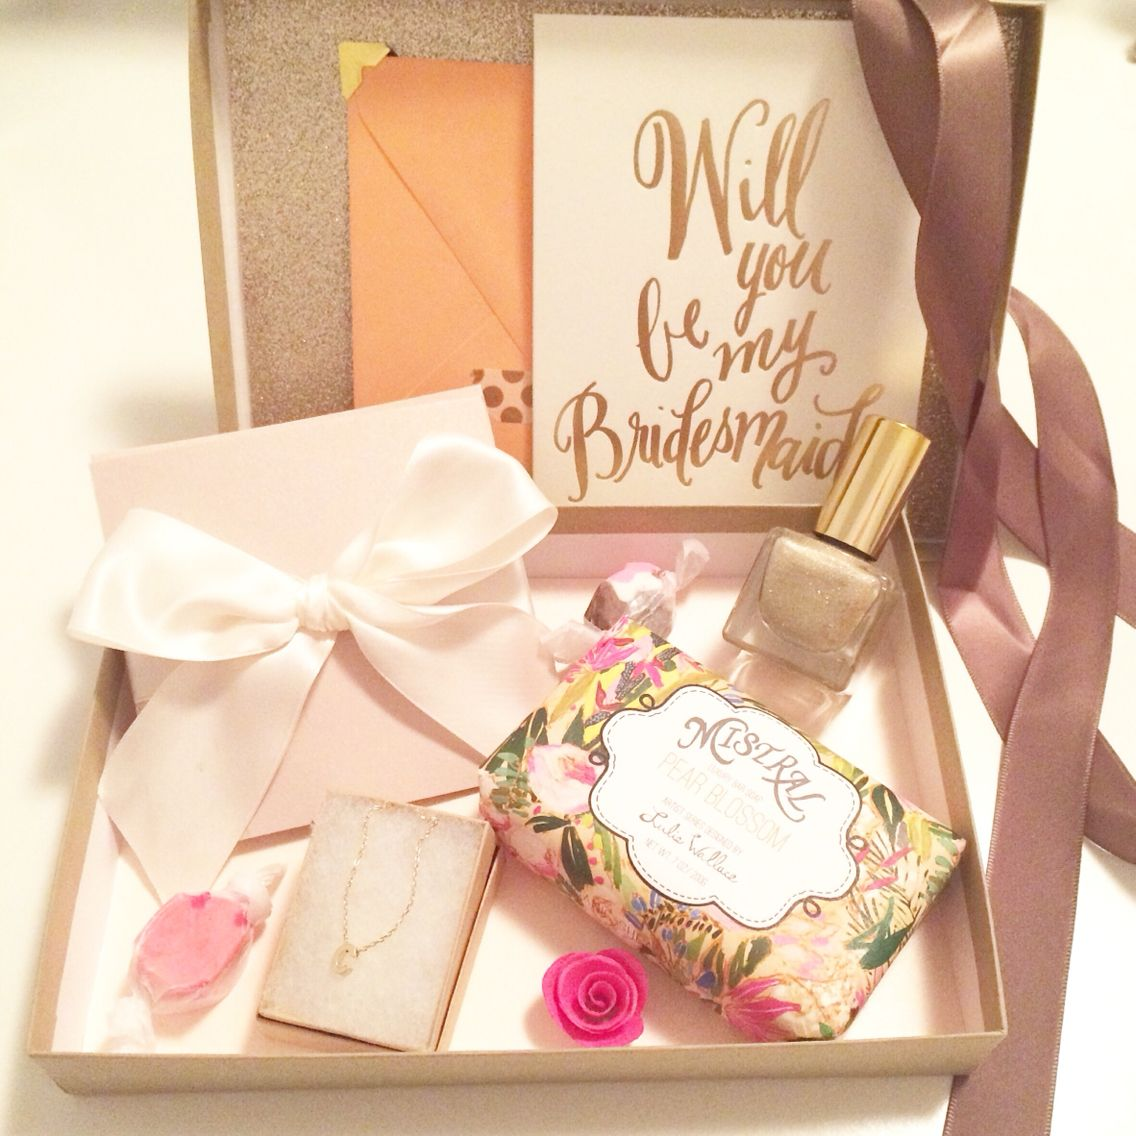 Bridesmaid box Claudette Marie Events Gifts for wedding